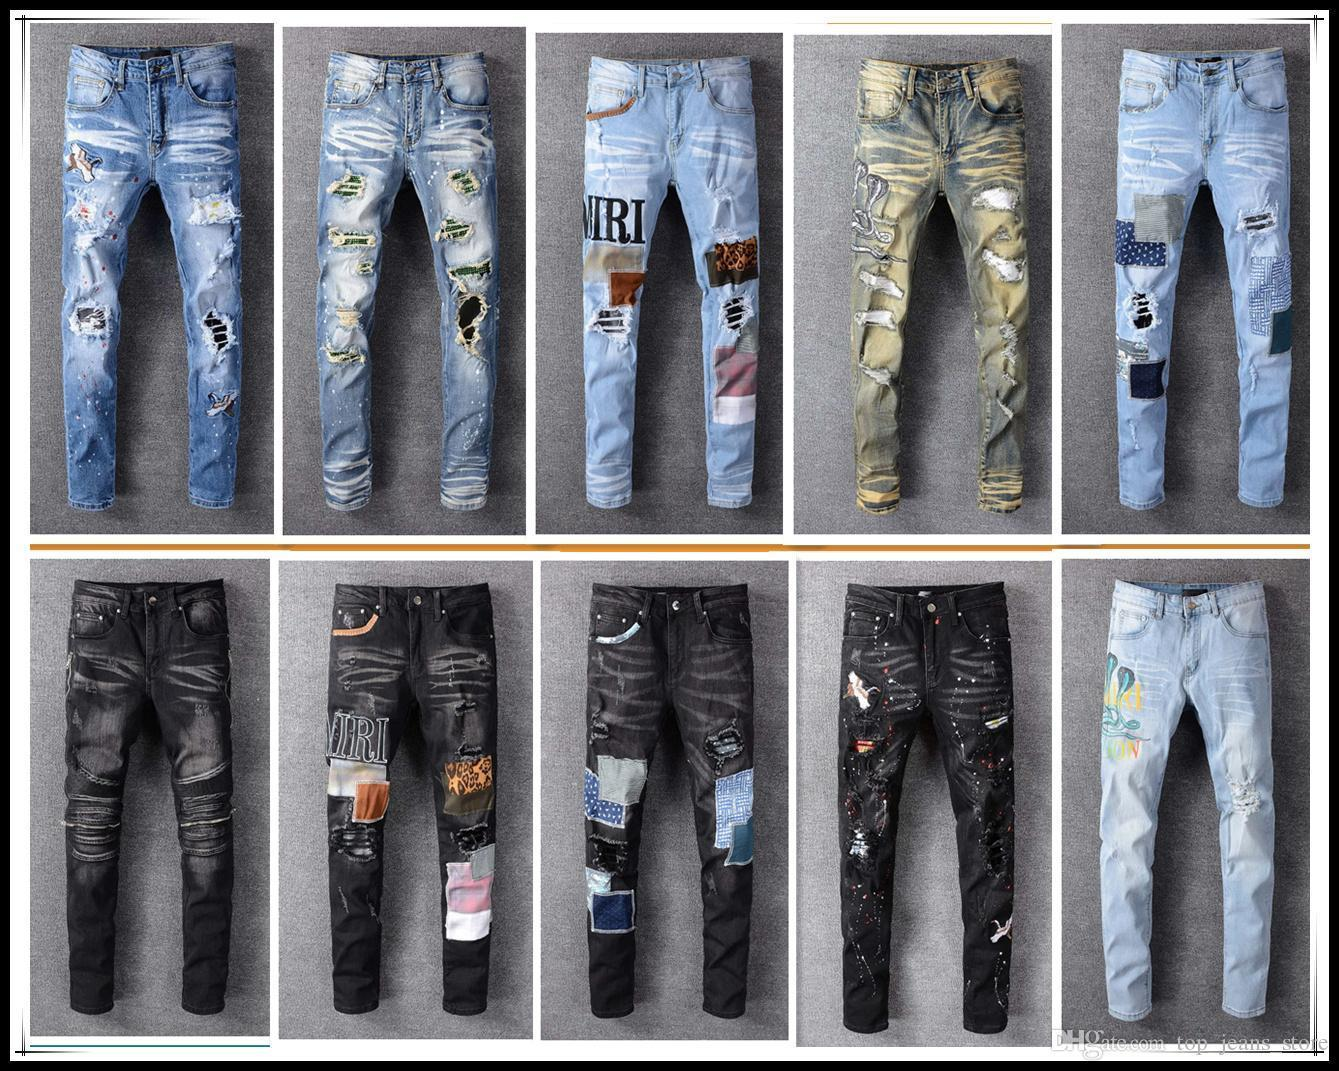 2020 2020 Arm Fashion Designer Mens Ripped Biker Jeans Leather Patchwork Slim Fit Black Moto Denim Joggers For Male Distressed Jeans Pants 28 40 From Shuang17 53 91 Dhgate Com